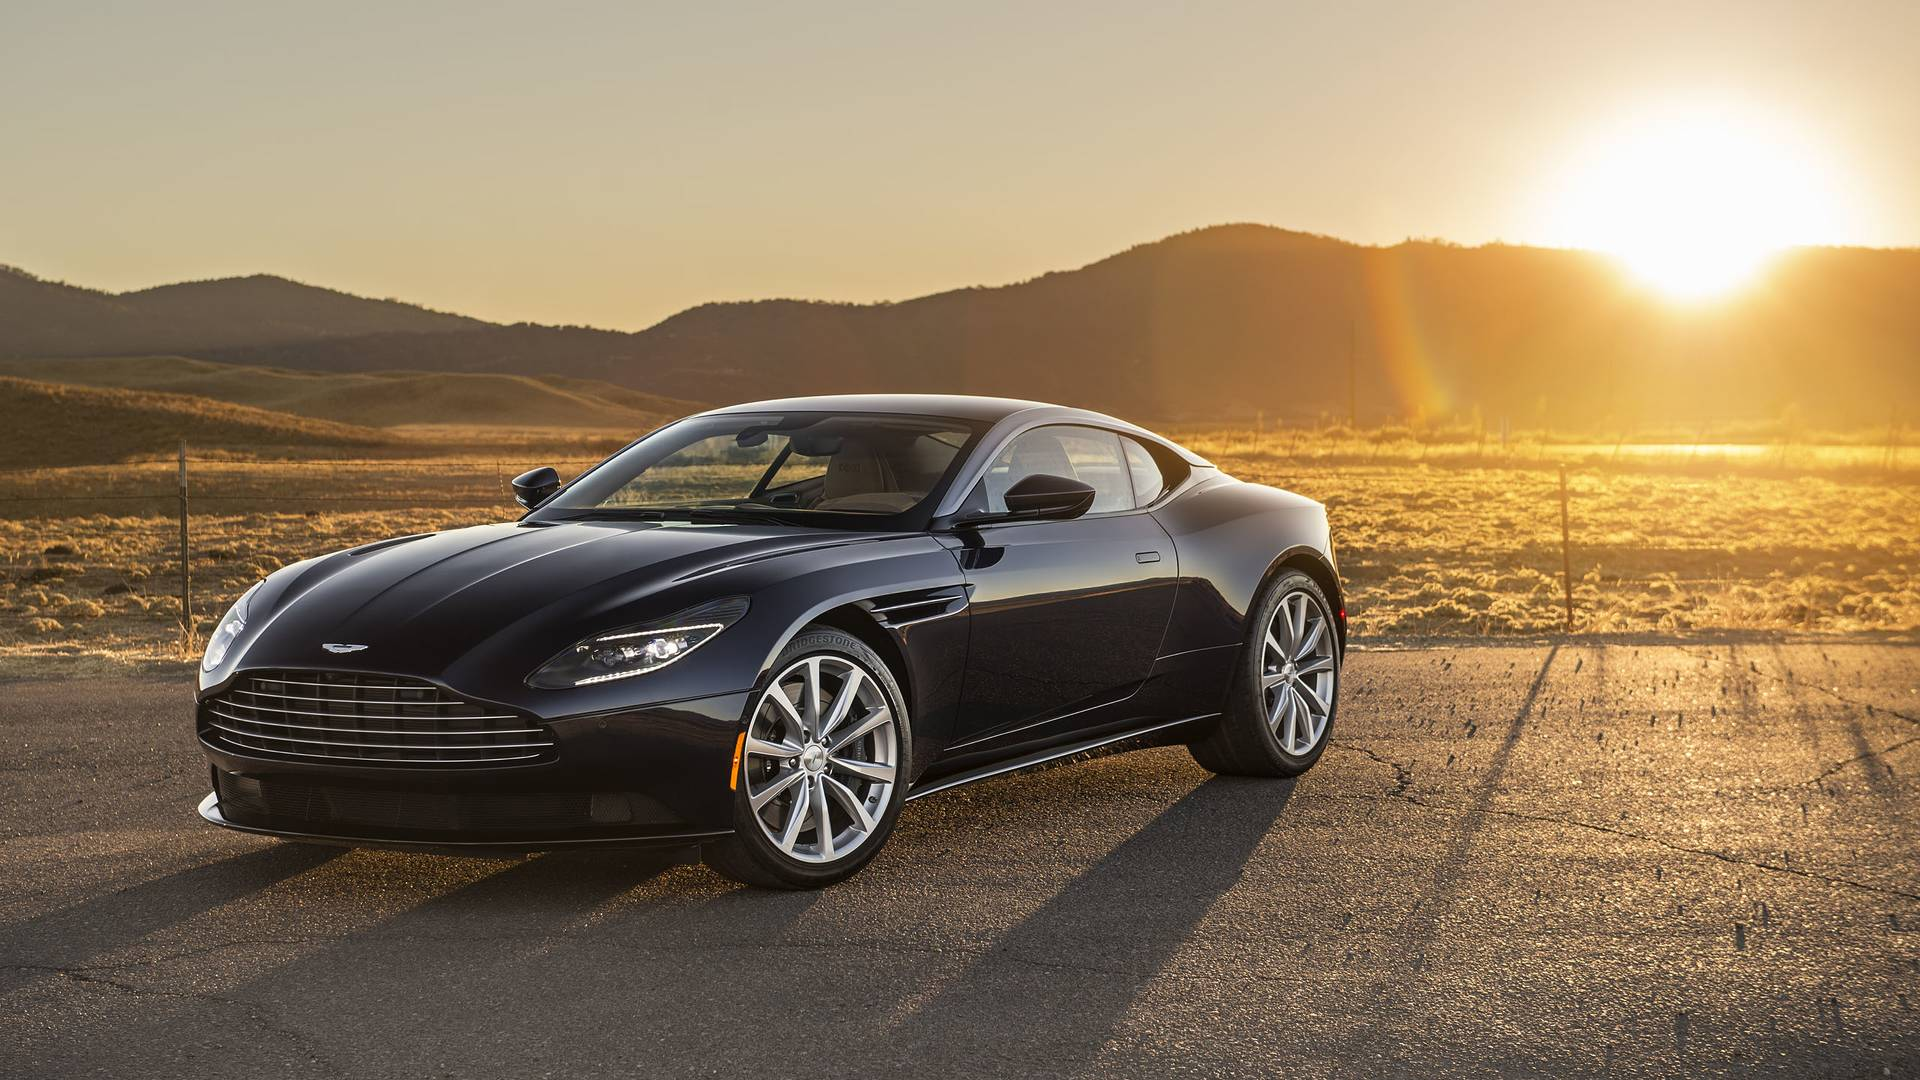 2018 Aston Martin DB11 V8 First Drive: Addition By Subtraction